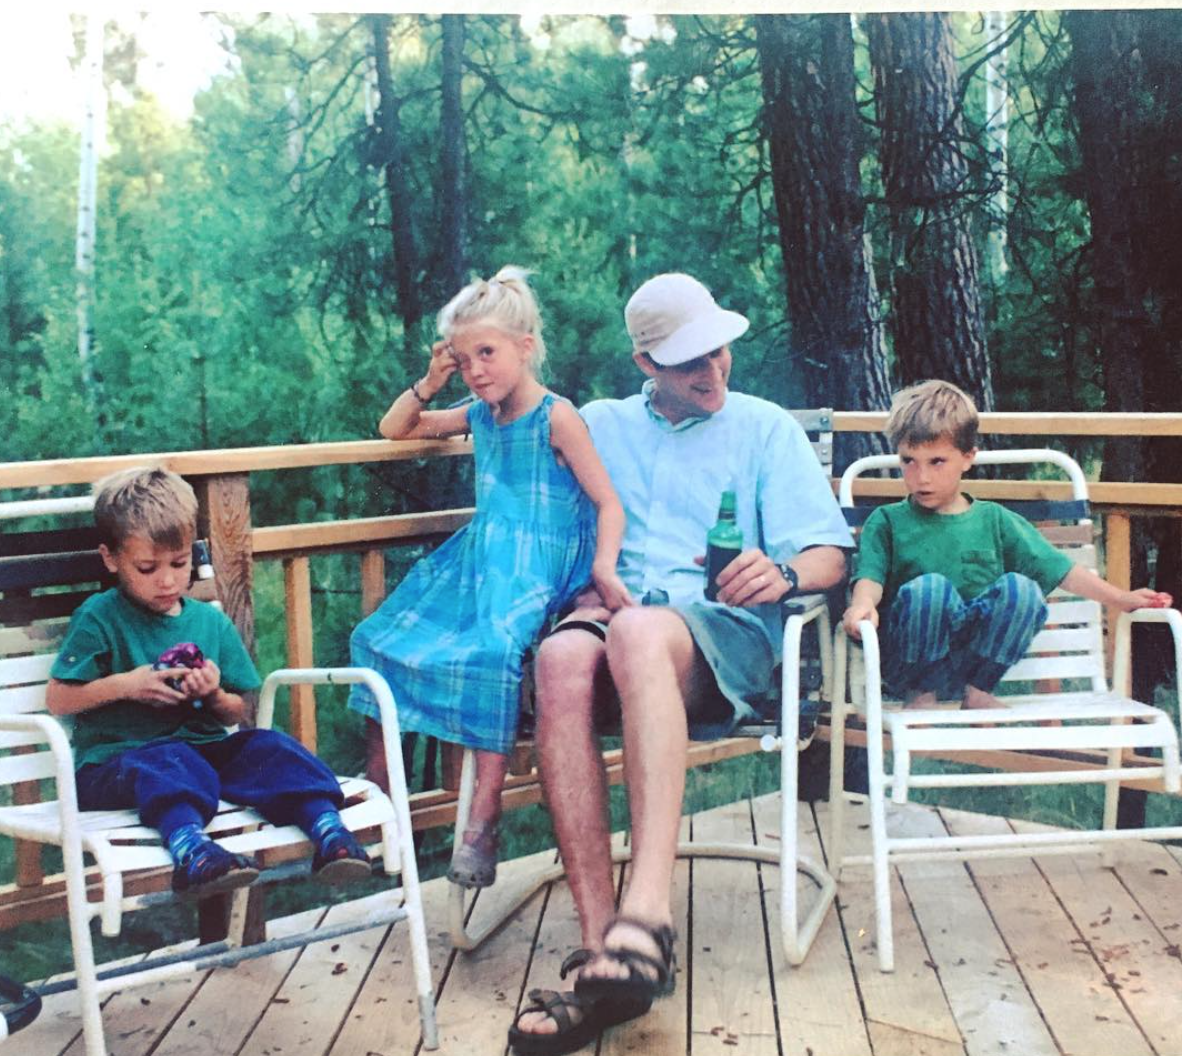 Left to Right: Charlie, Emily, Pete, and Henry. Photo Courtesy of the Nelson Family.